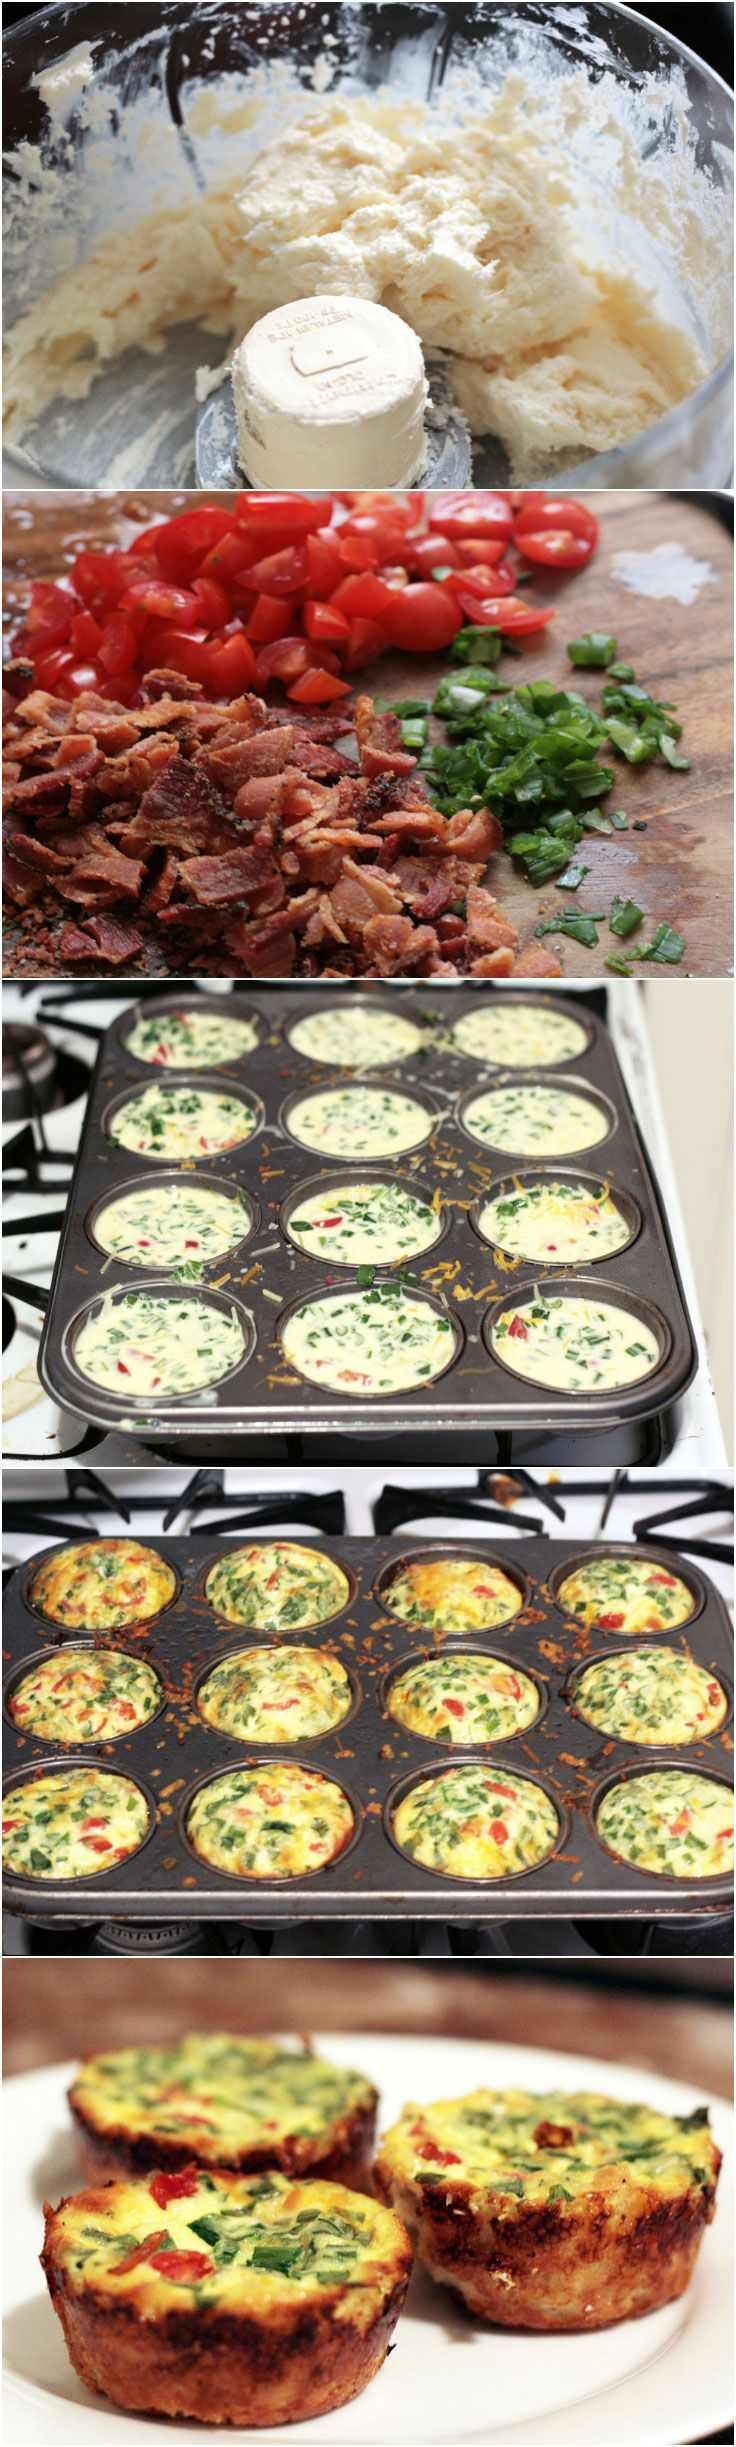 Easy Mini Quiche Recipe that you can fill with your favorites